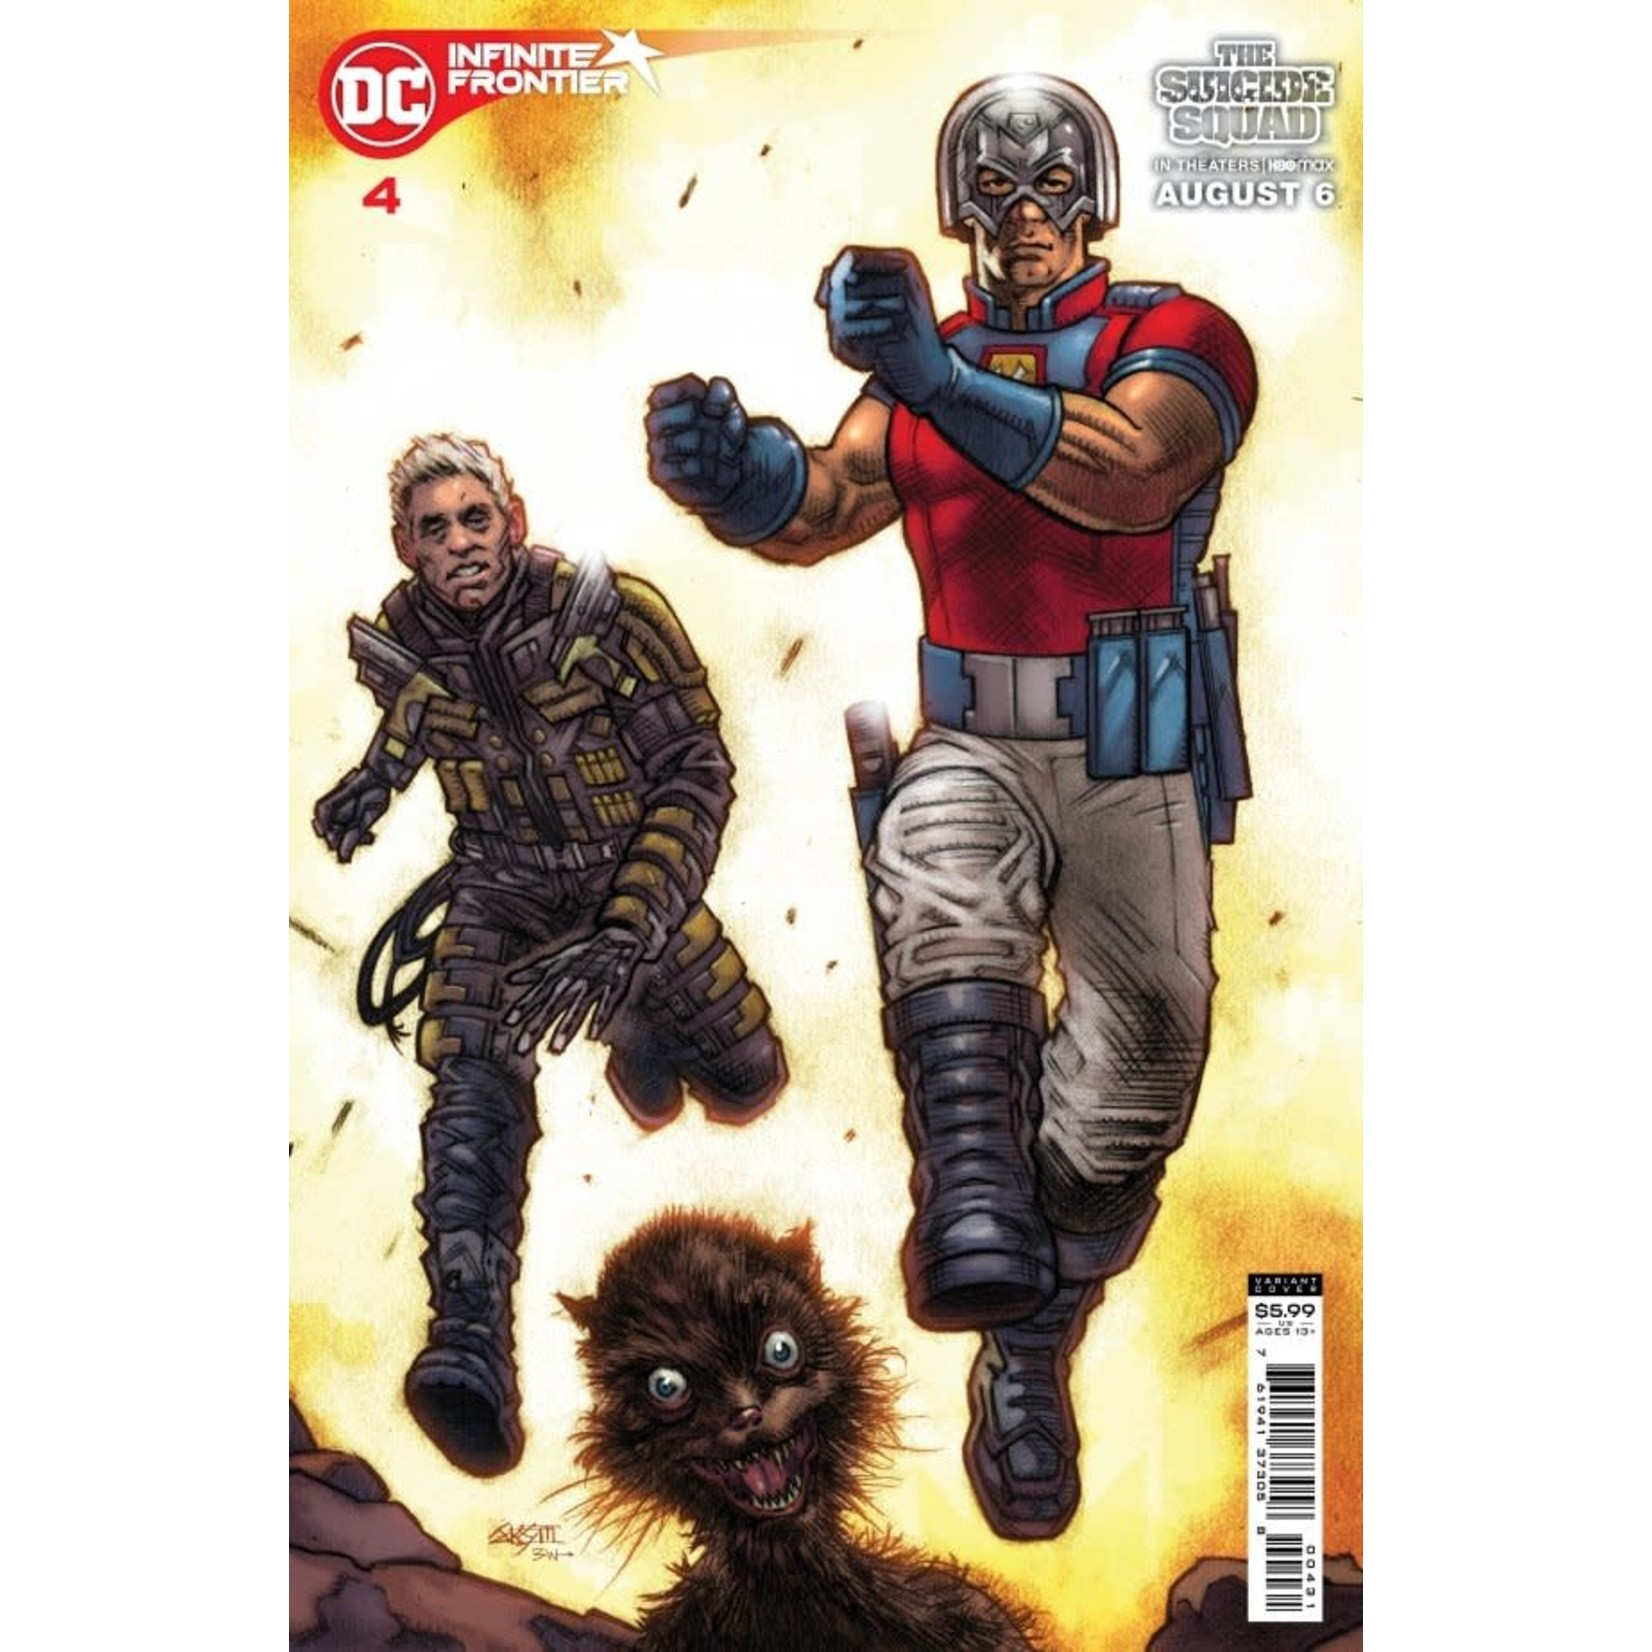 DC Comics Infinite Frontier #4 Cover C Snyder Suicide Squad Movie Card Stock Variant